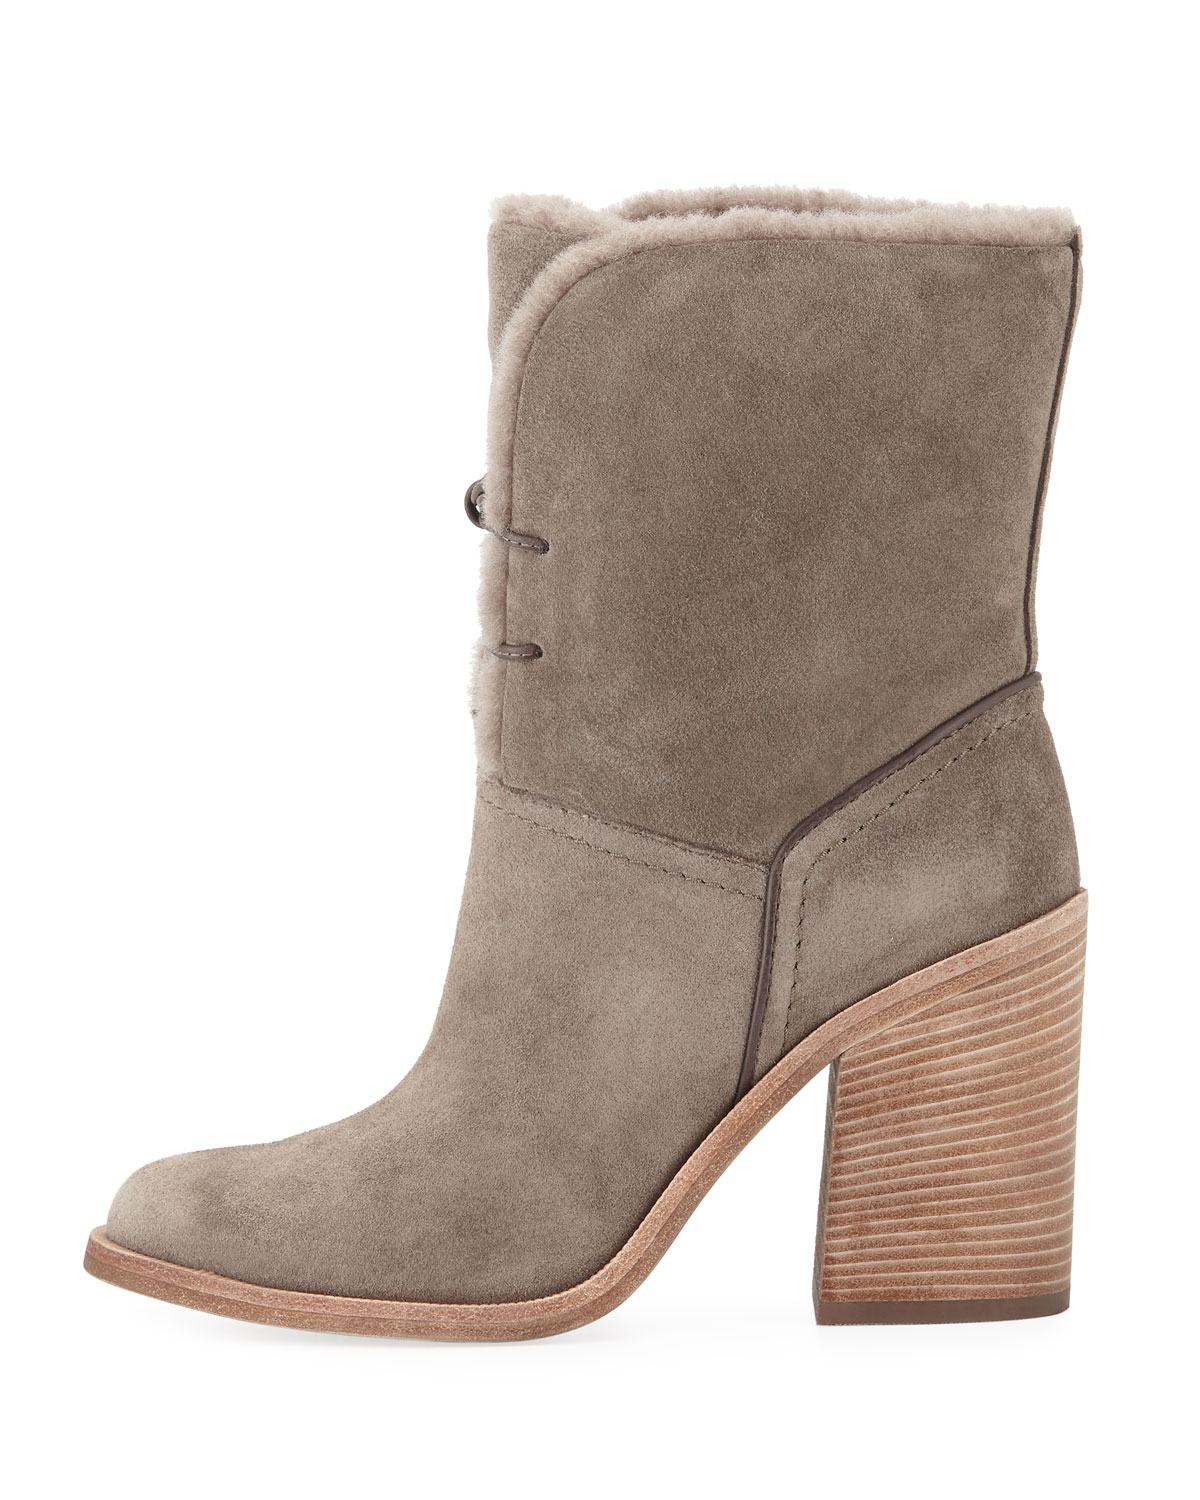 387b49cb427 Jerene Shearling-Lined Ankle Bootie